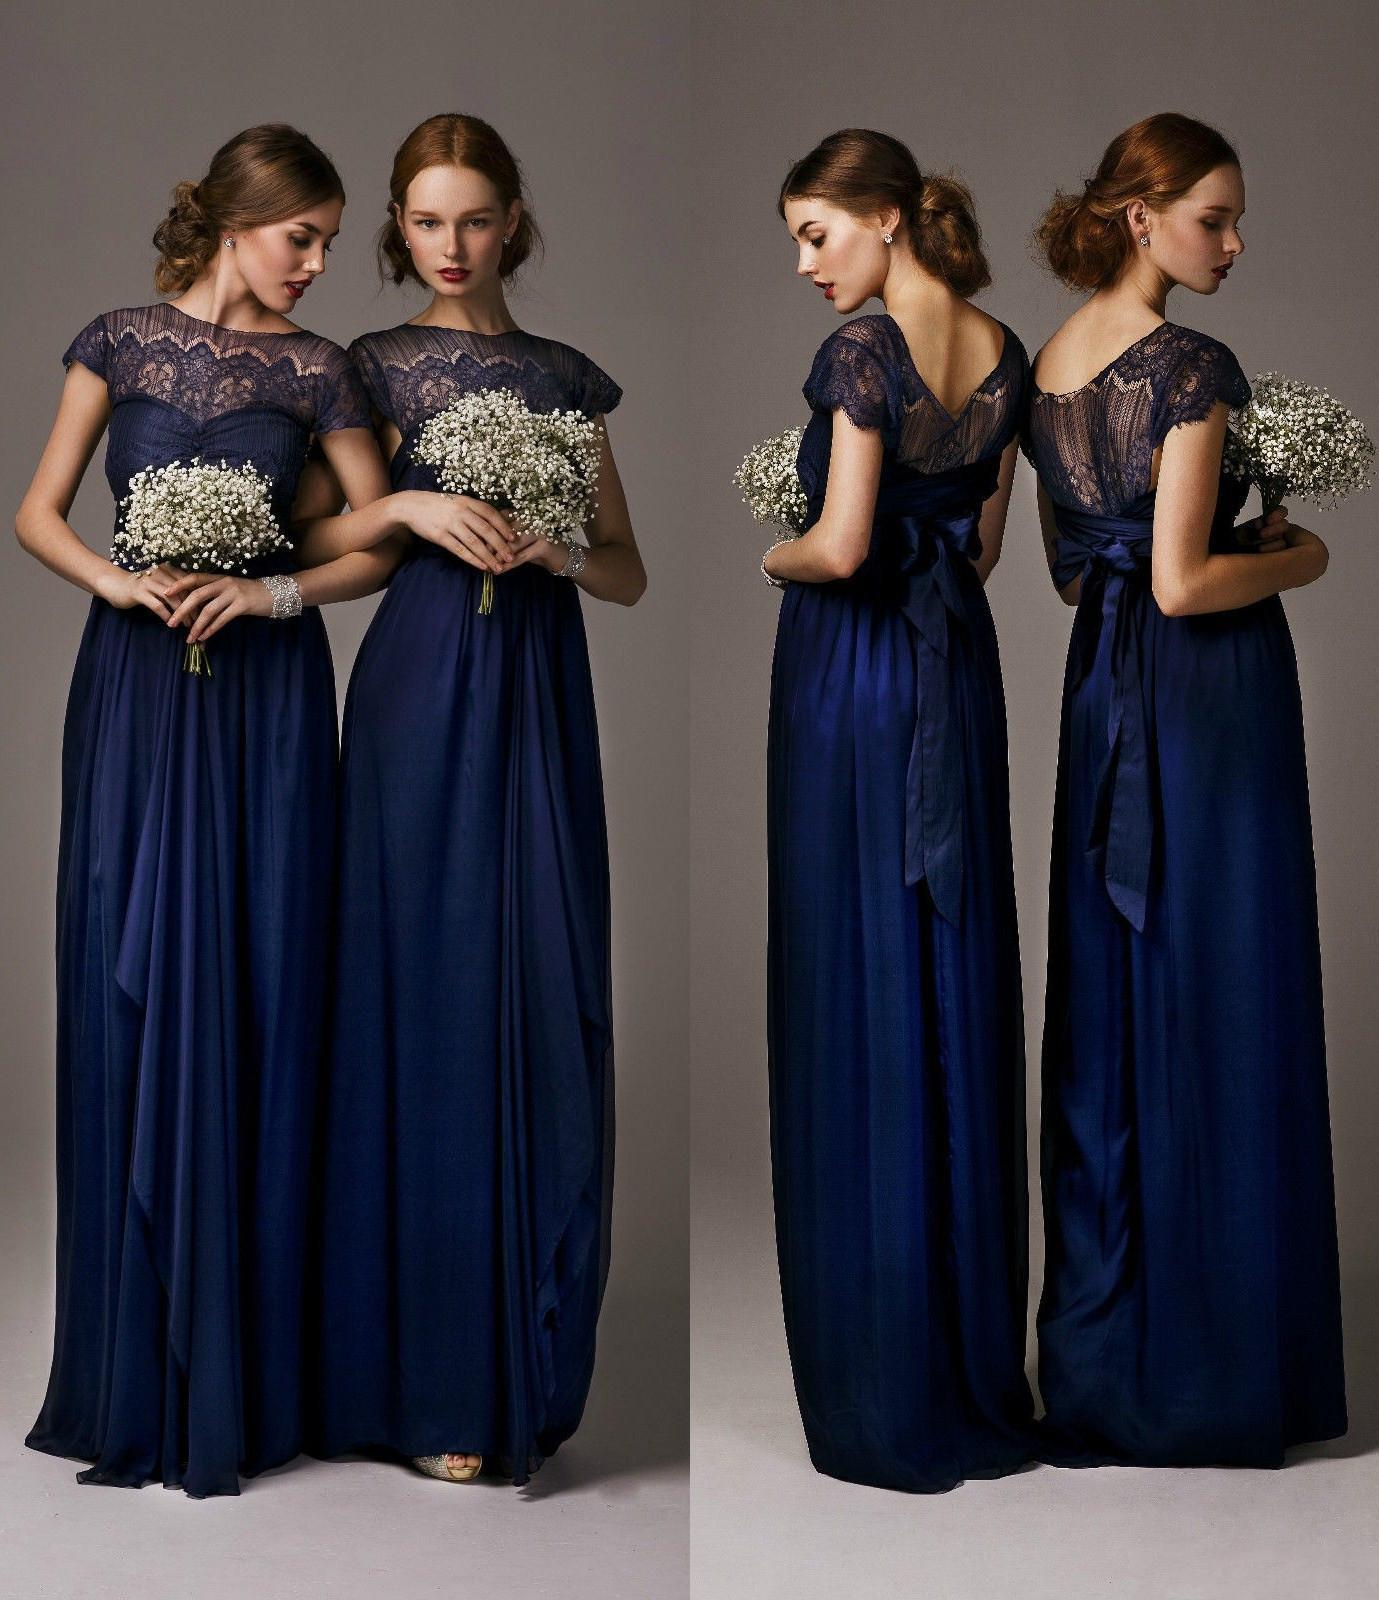 Chiffon lace bridesmaid dresses 2014 navy blue maid of honor bride see larger image ombrellifo Images